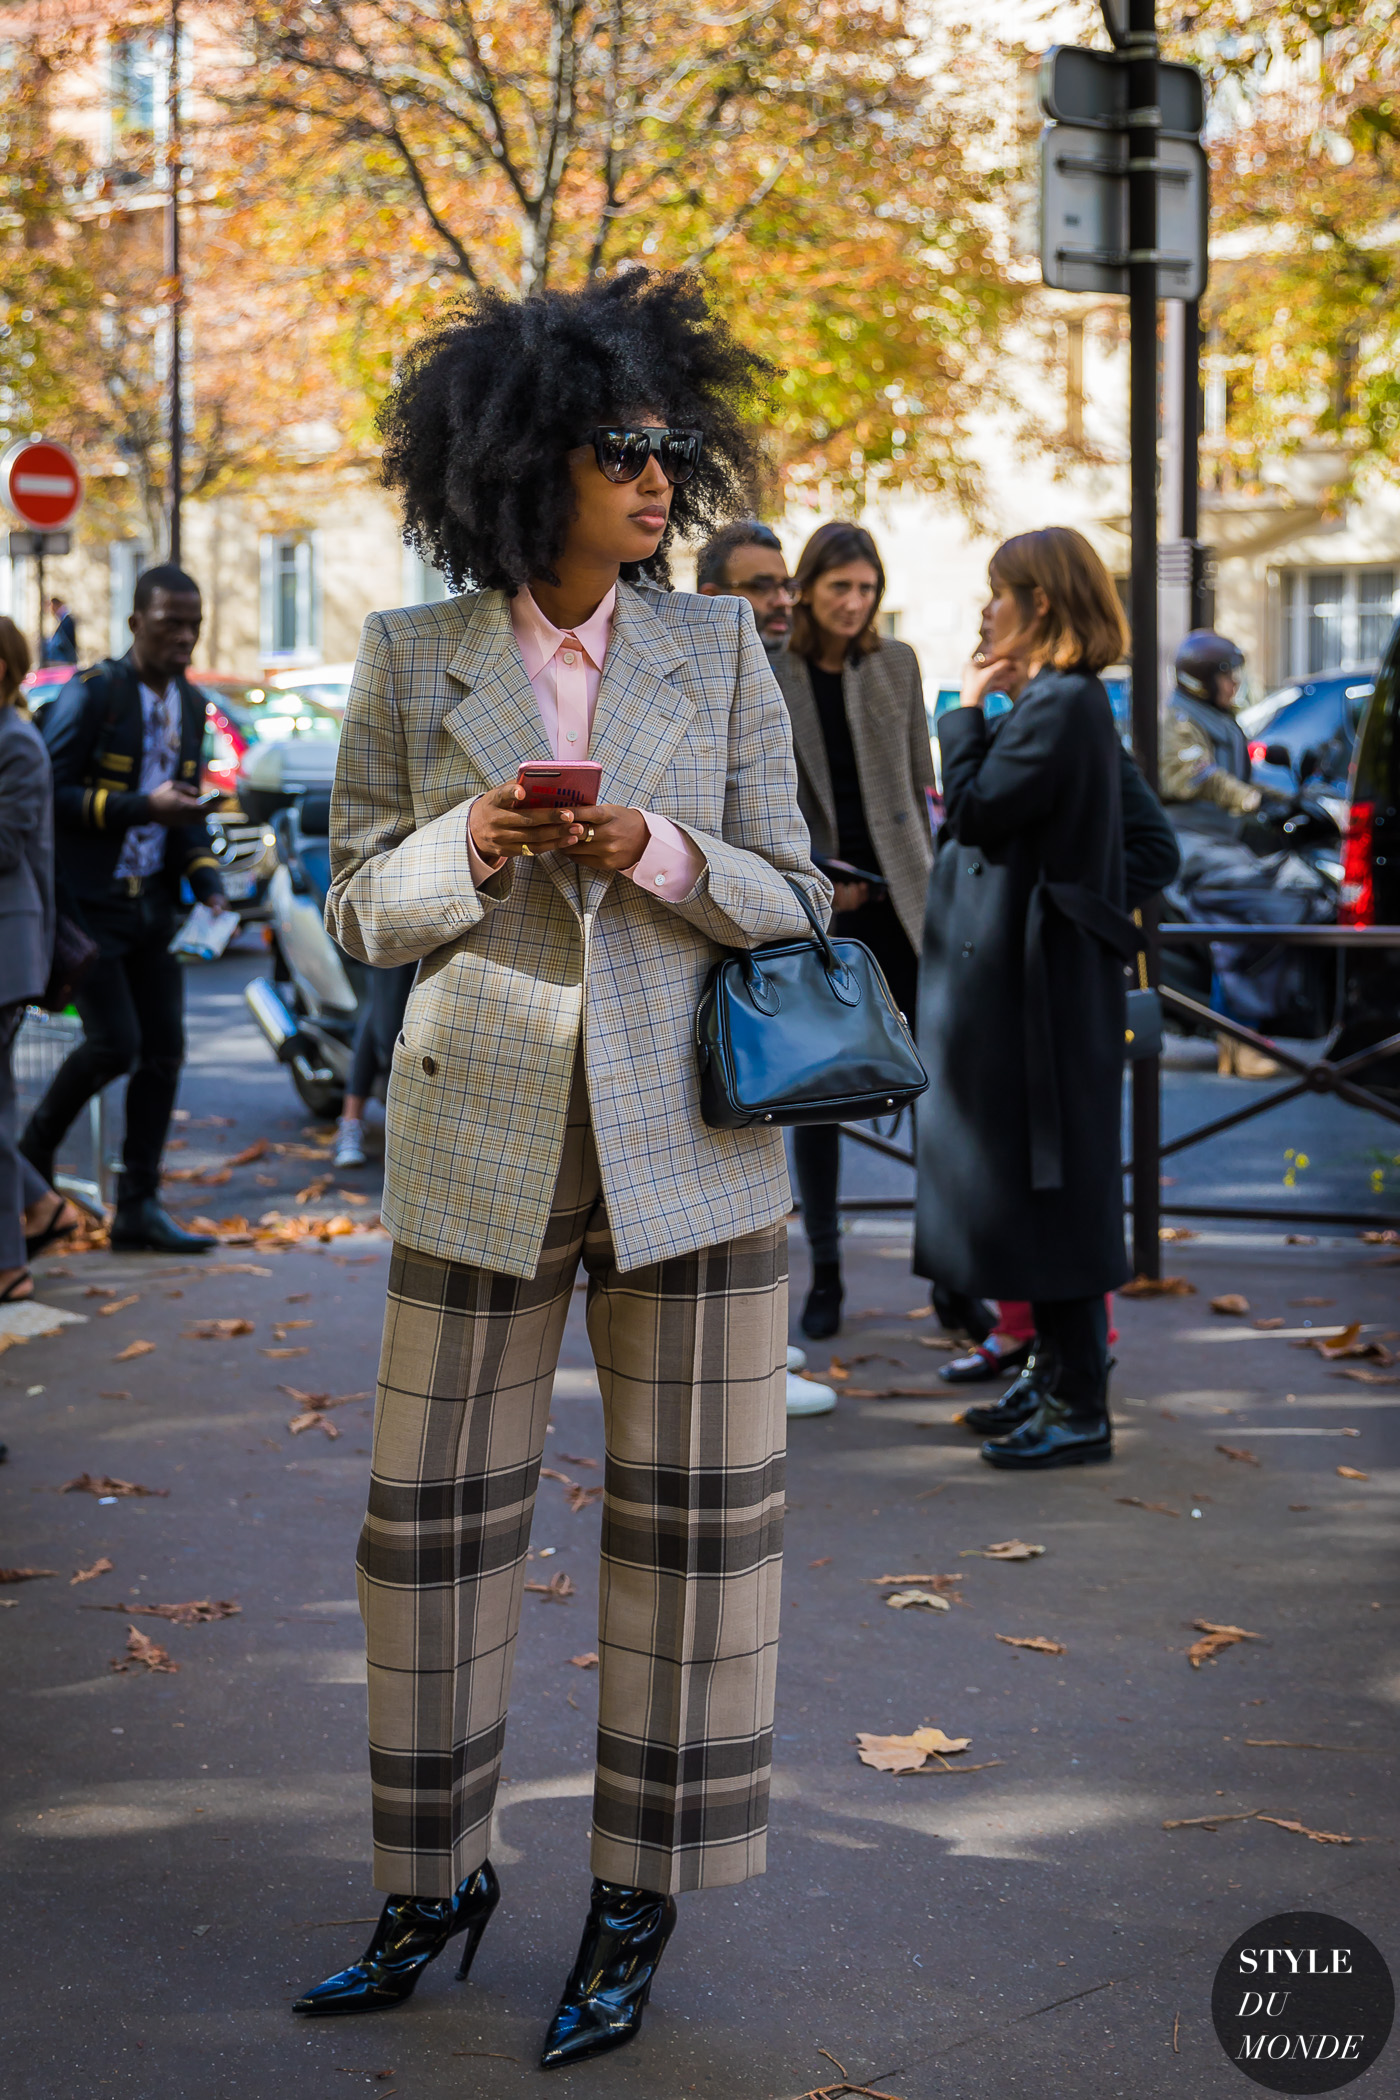 Julia Sarr-Jamois by STYLEDUMONDE Street Style Fashion Photography_48A4777